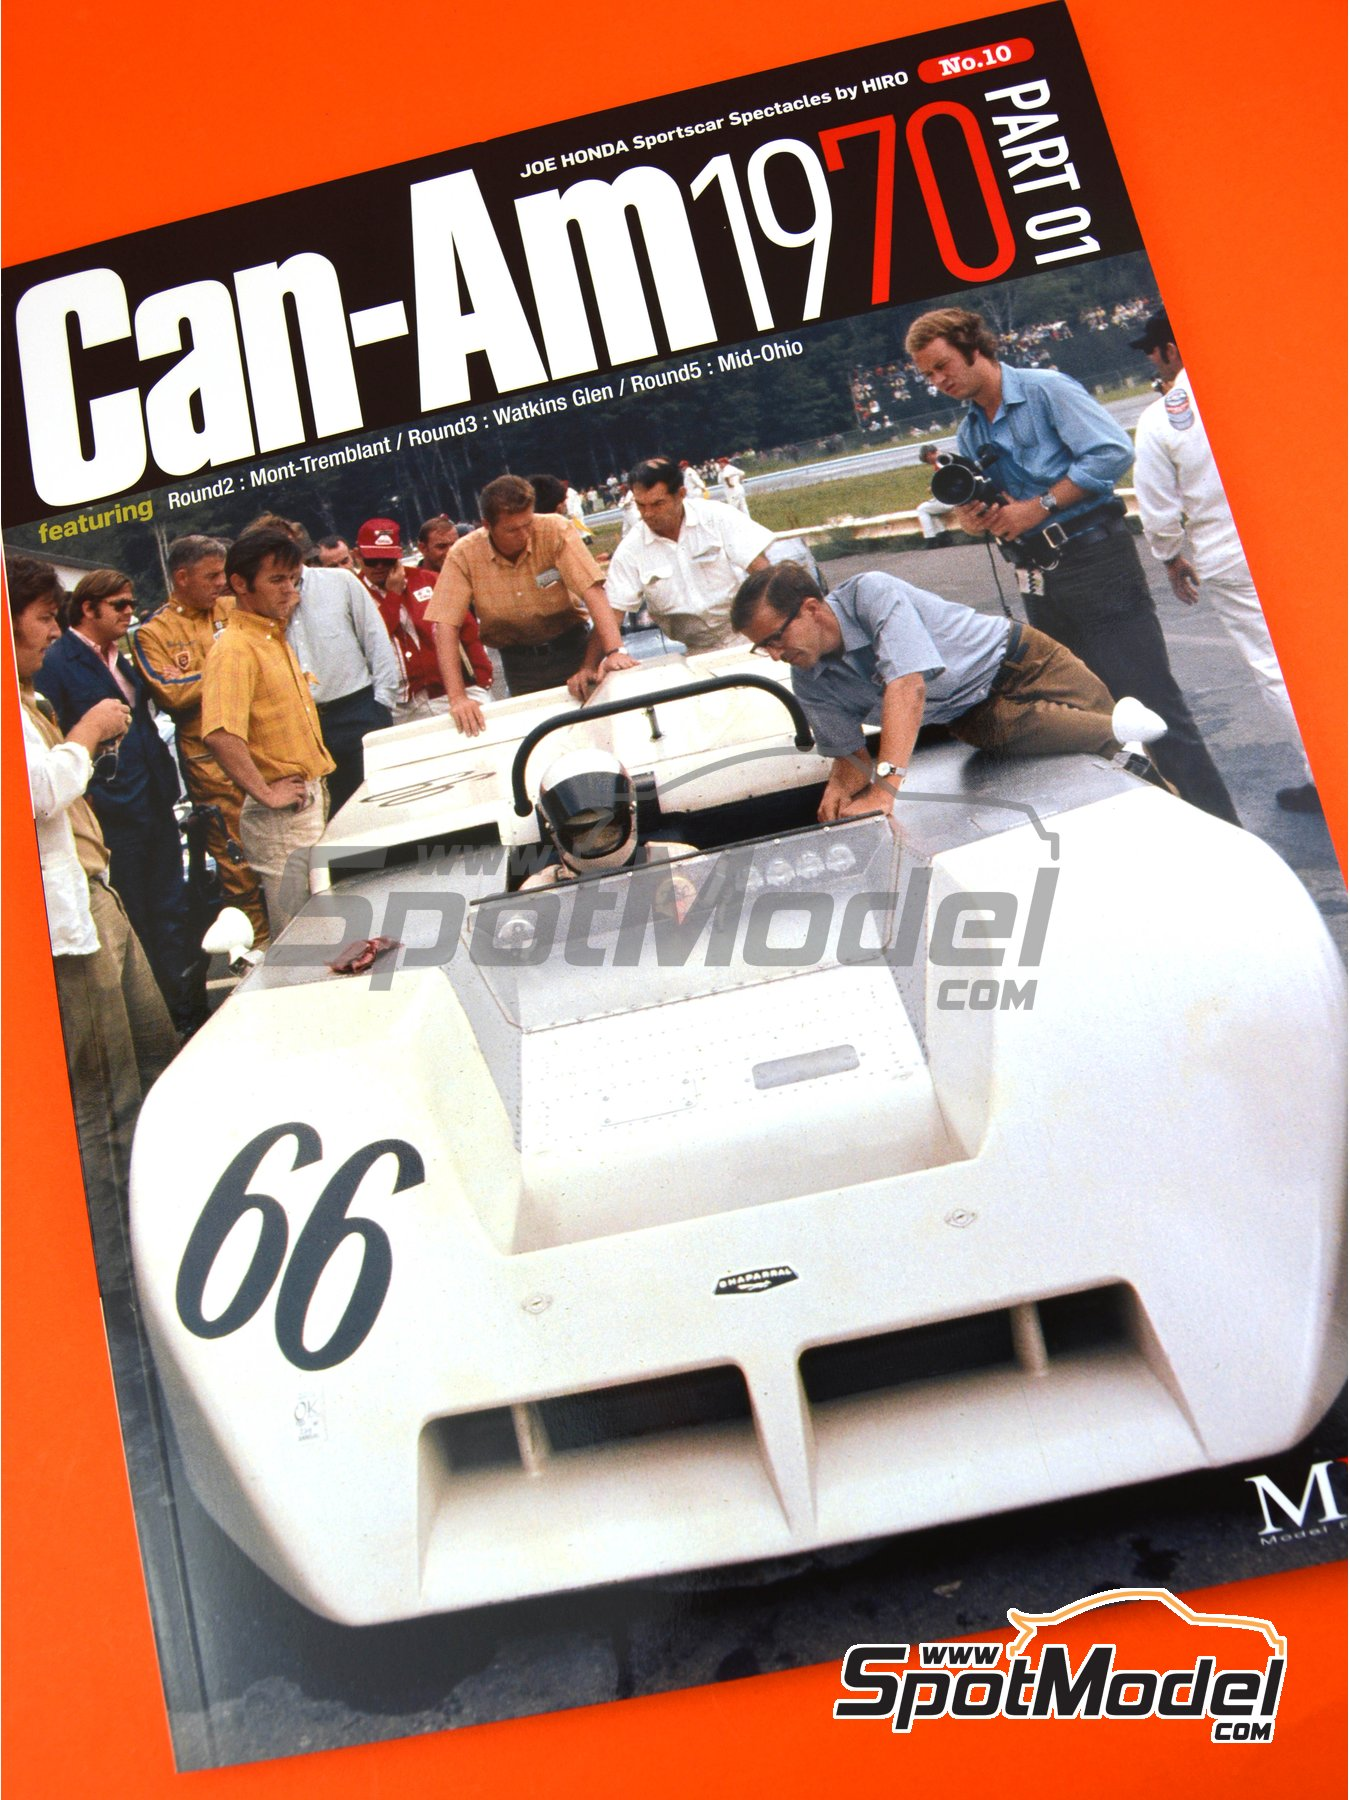 JOE HONDA Sportcar Spectacles by Hiro: Parte 1 - Can-Am 1970 | Libro de referencia fabricado por Model Factory Hiro (ref. MFH-SS010) image